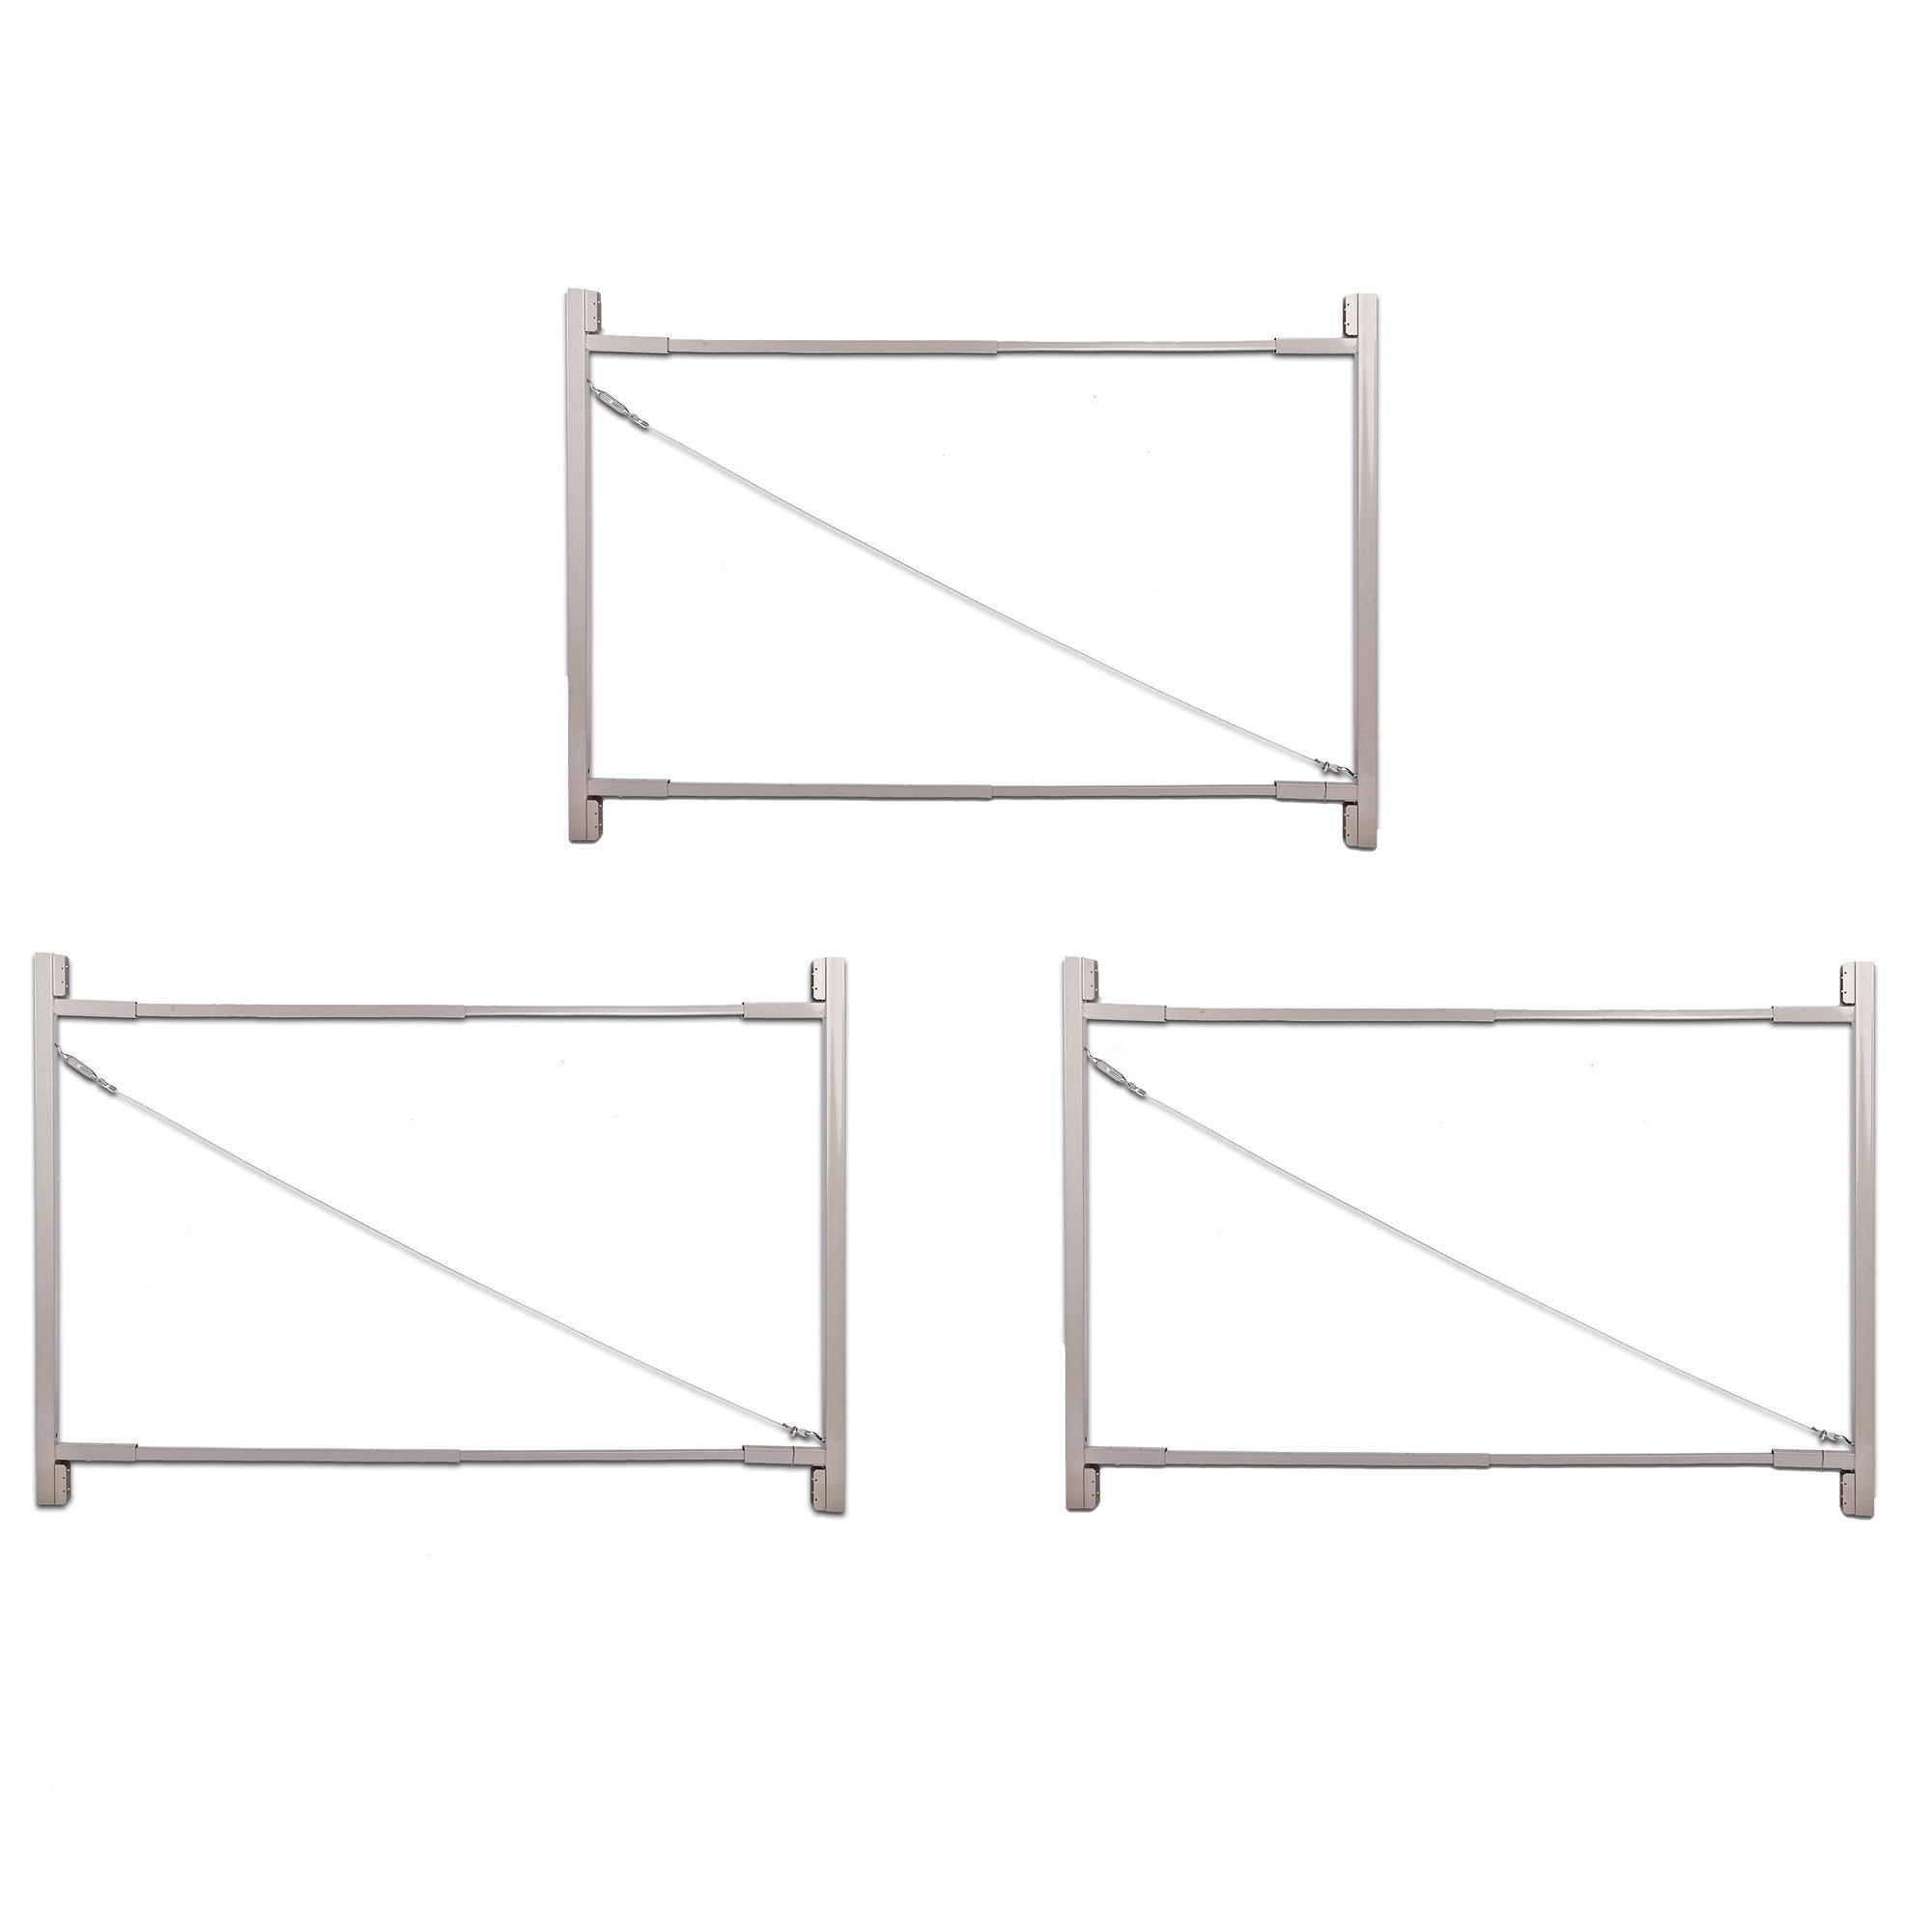 Adjust-A-Gate Gate Building Kit, 36''-72'' Wide Opening up to 6' High (3 Pack) by Adjust-A-Gate (Image #1)